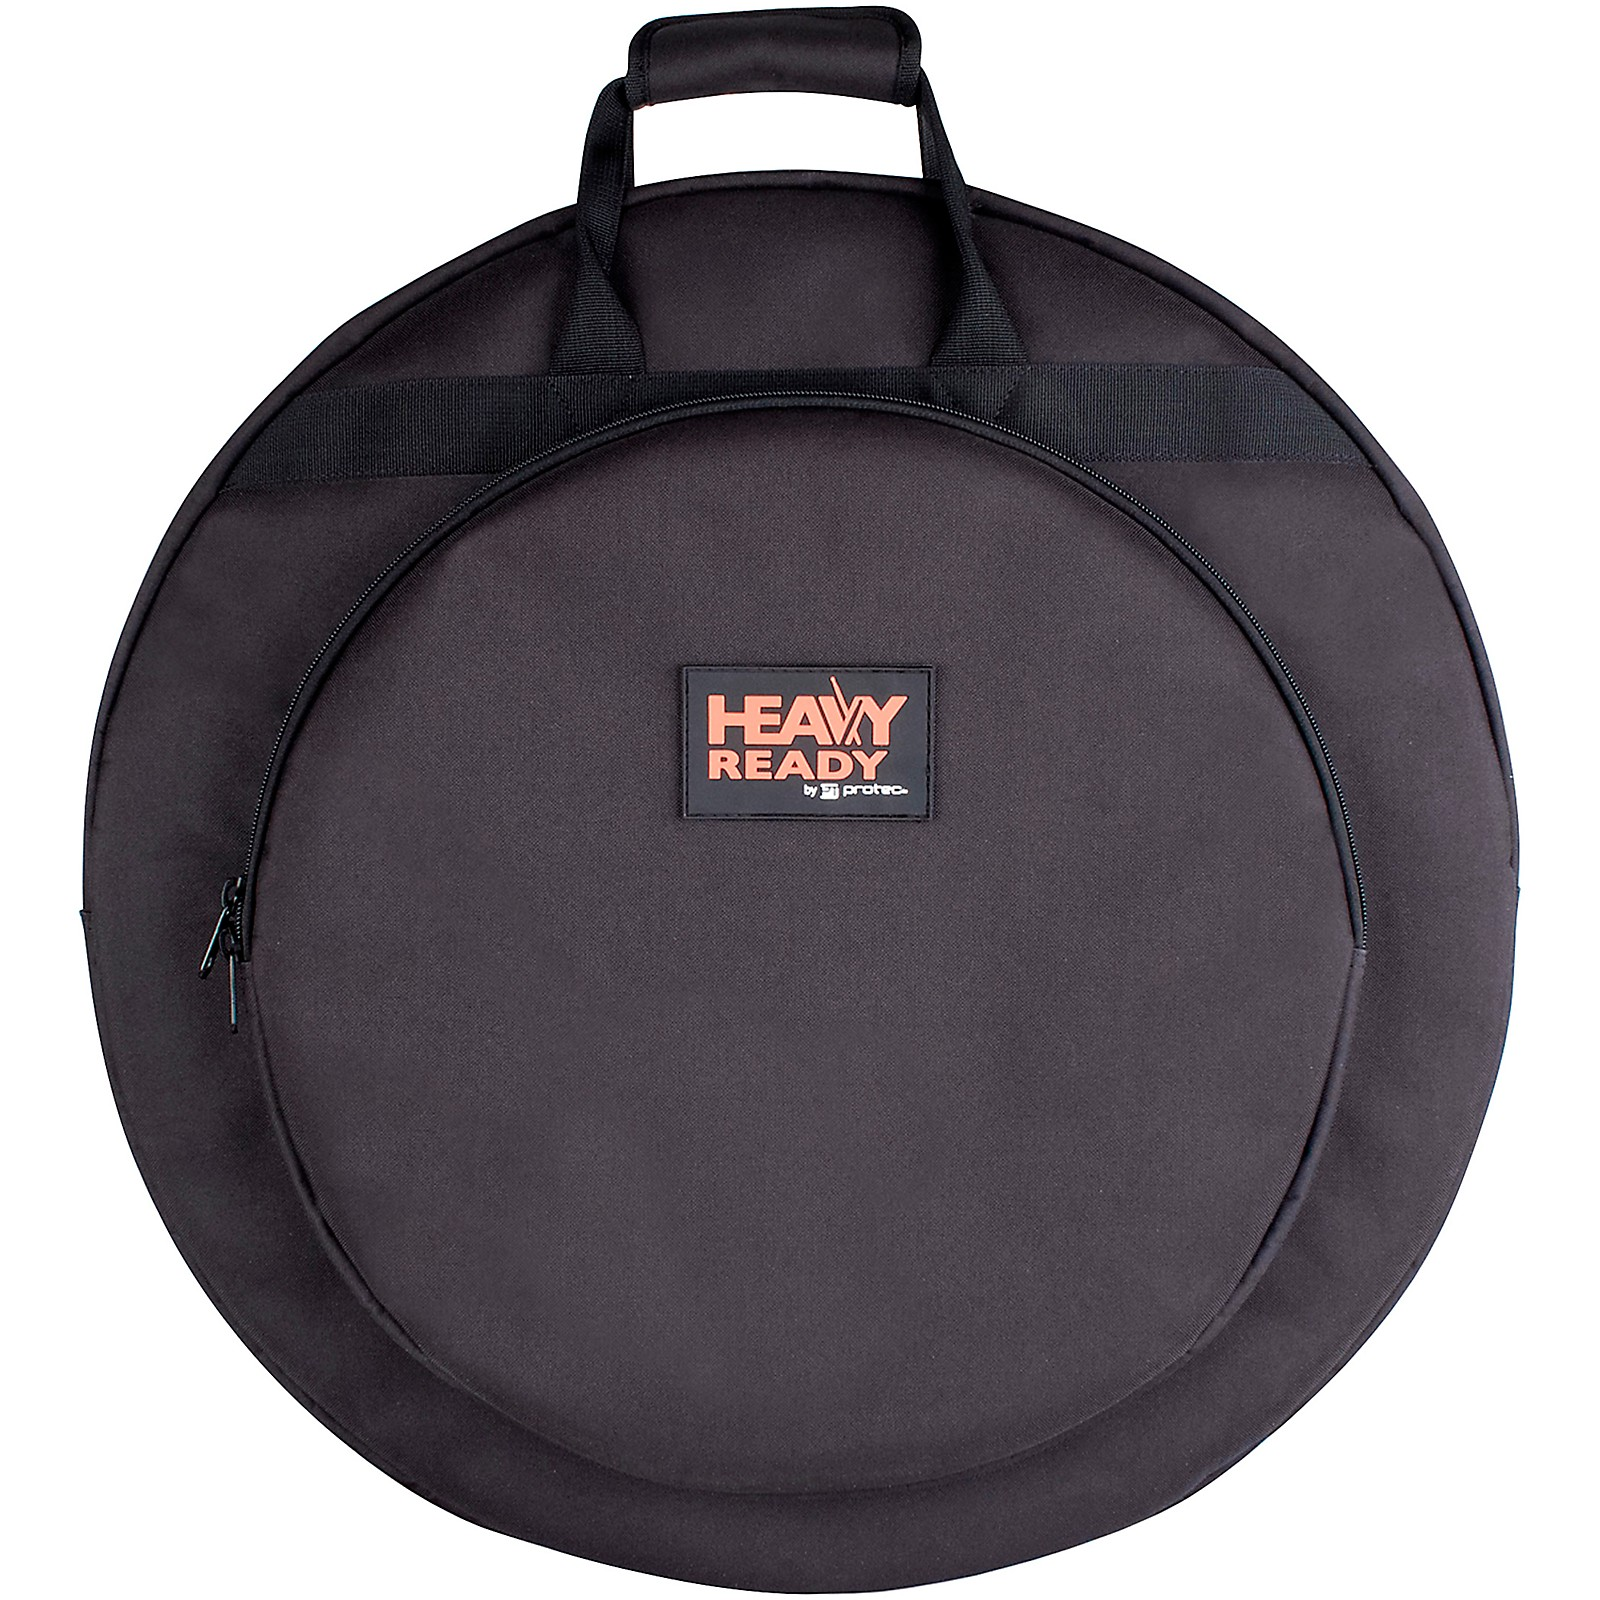 Protec Heavy Ready Series Cymbal Bag with 2 Padded Dividers & Backpack Straps